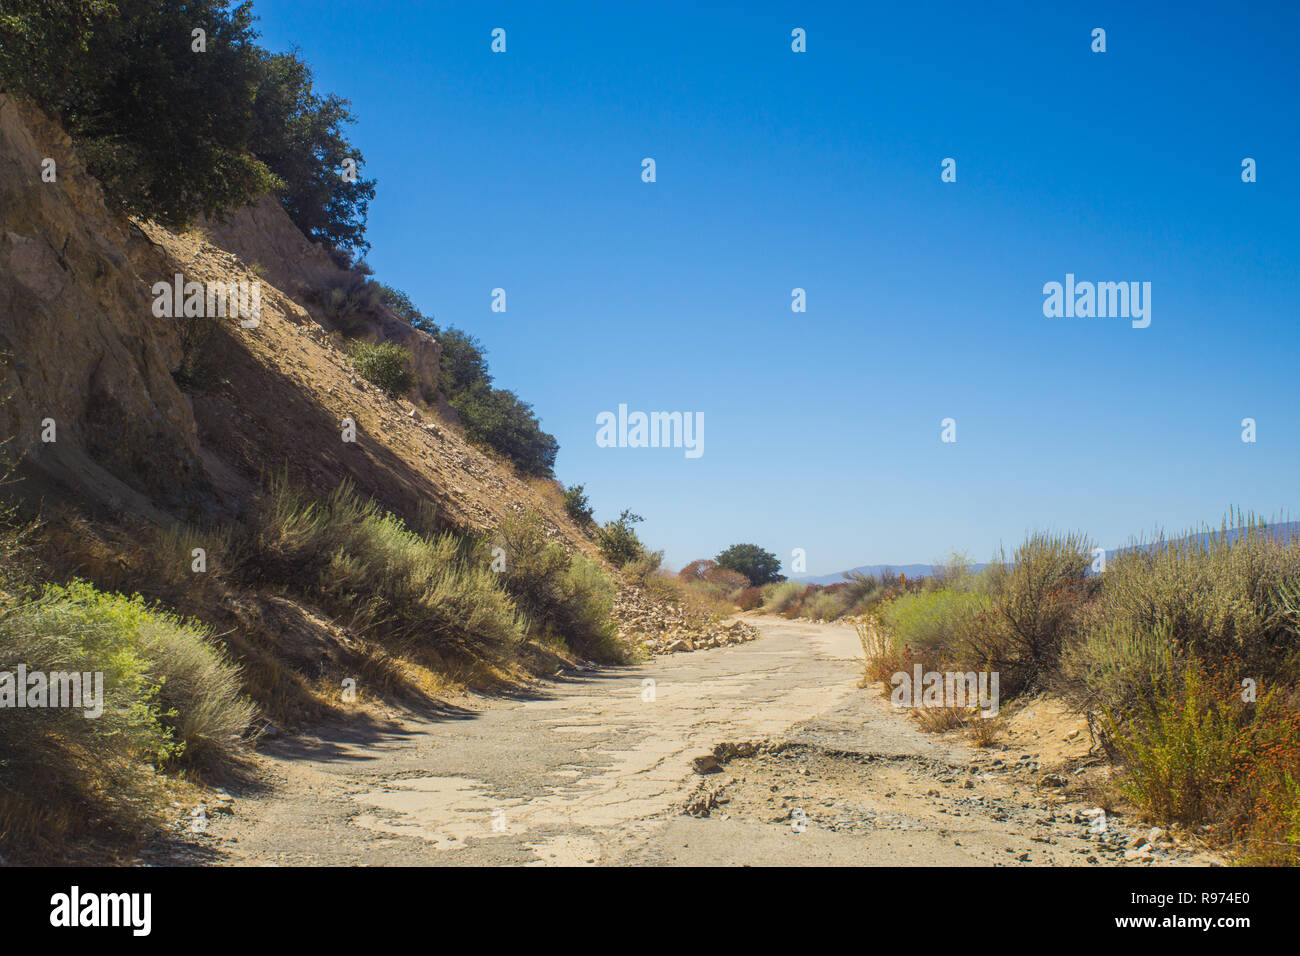 Rugged driving trail leads long the edge of the mountains in southern California near Gorman. - Stock Image